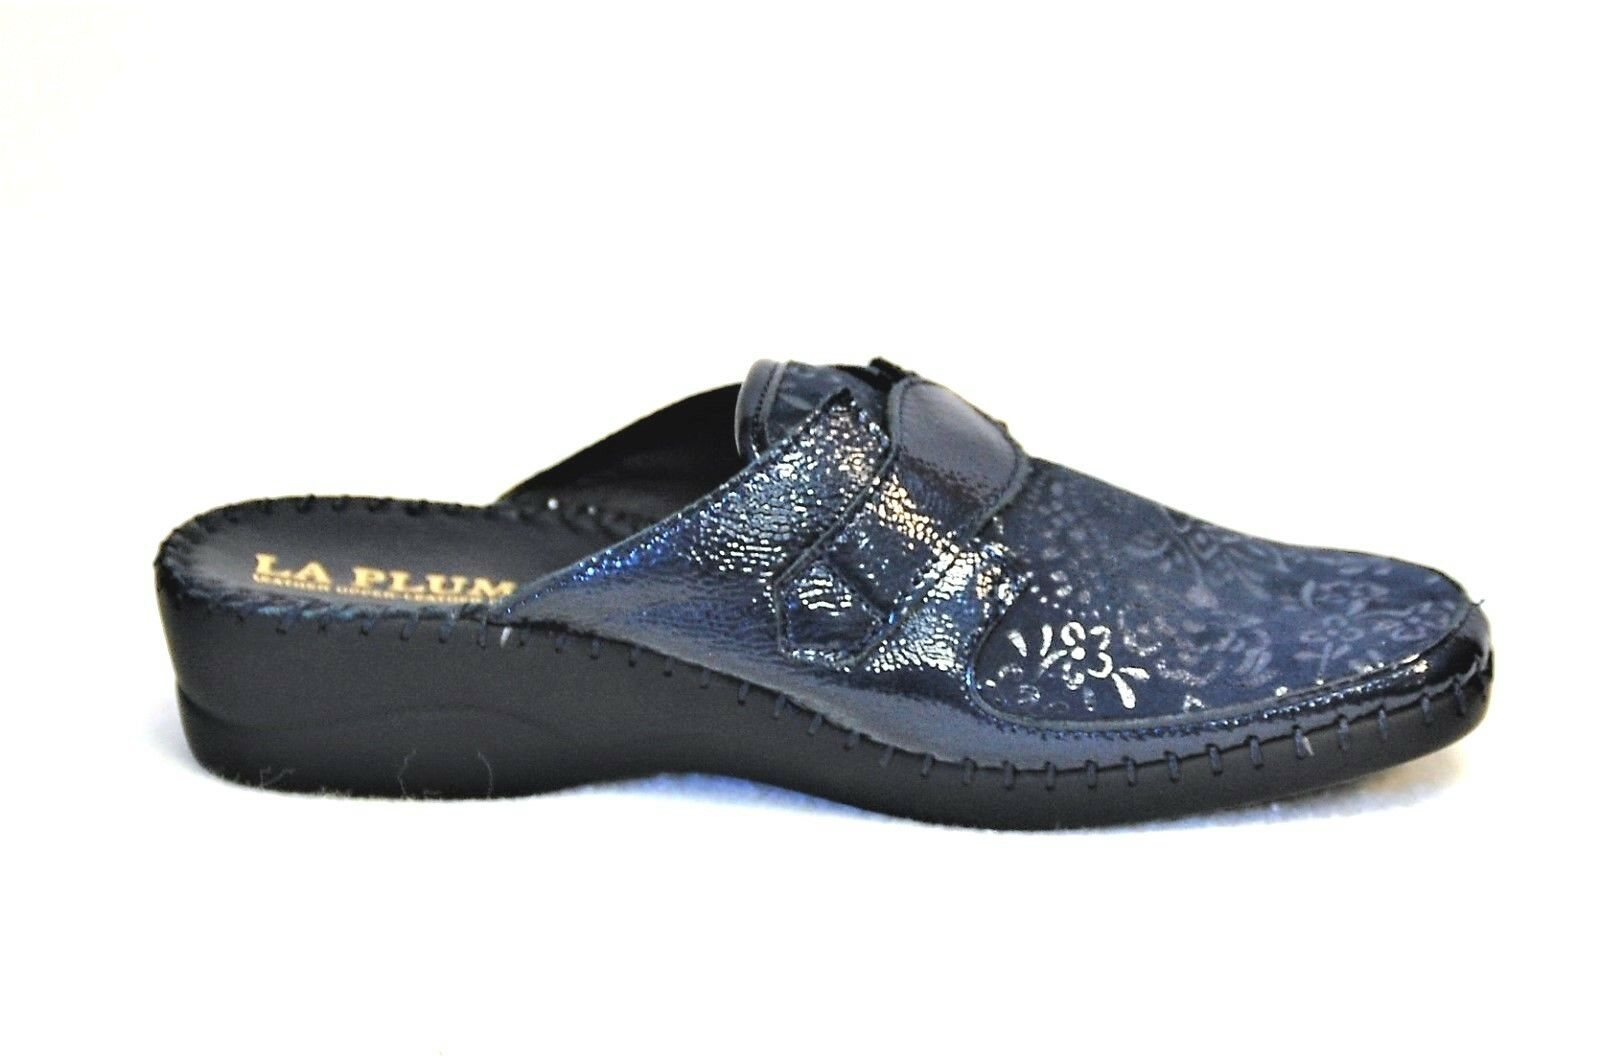 La Plume Garden Navy Navy Navy Patent Leather and embossed suede slip on Eur 40 0bf4f4